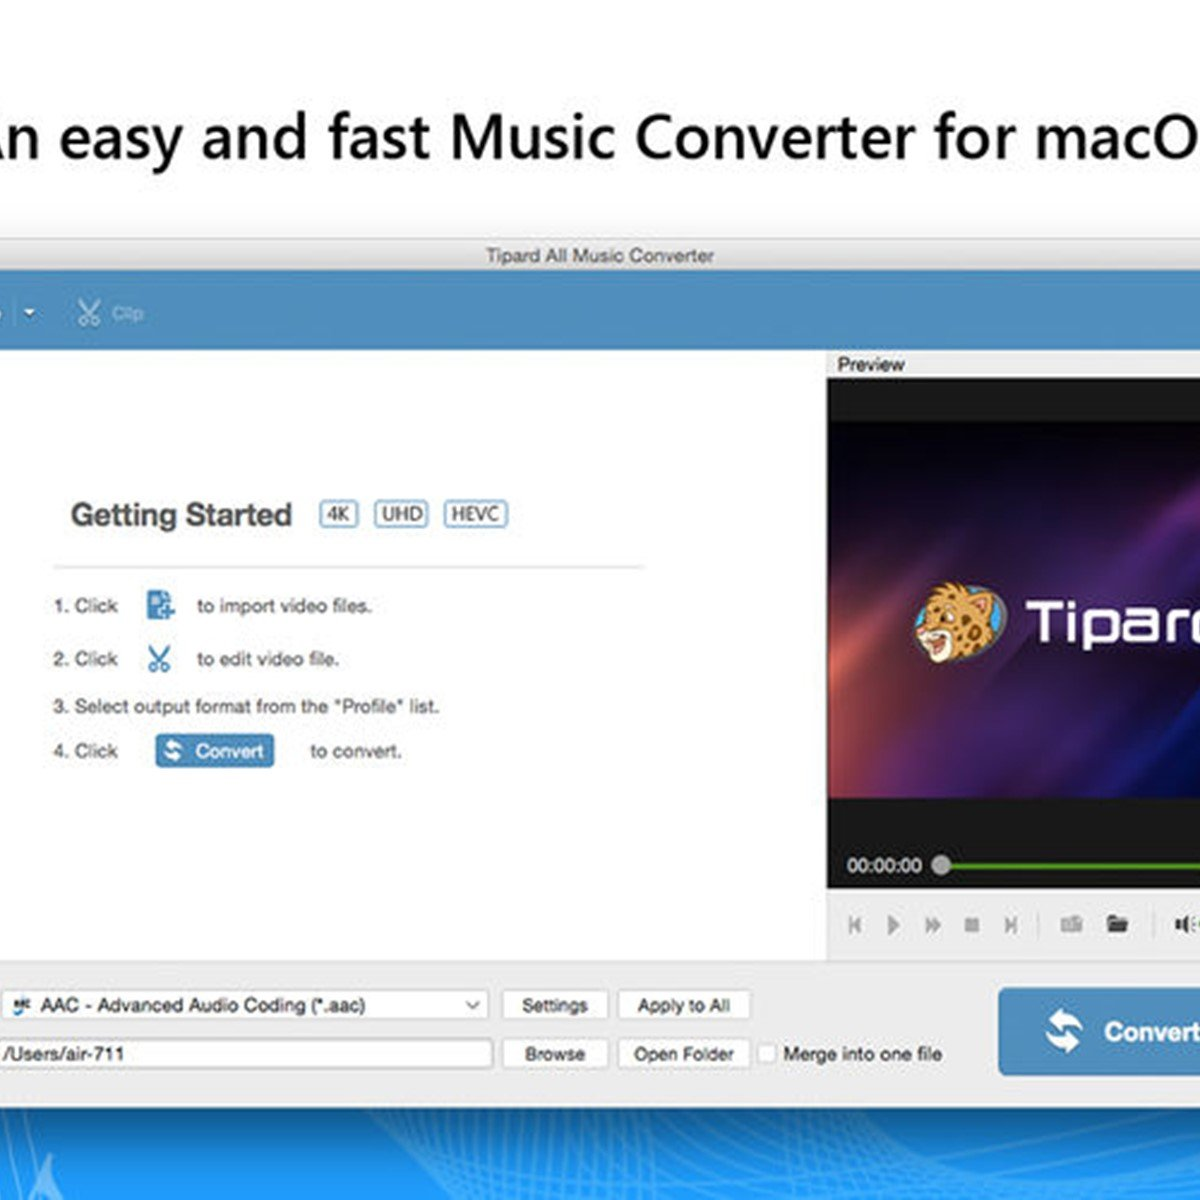 Tipard All Music Converter Alternatives and Similar Software